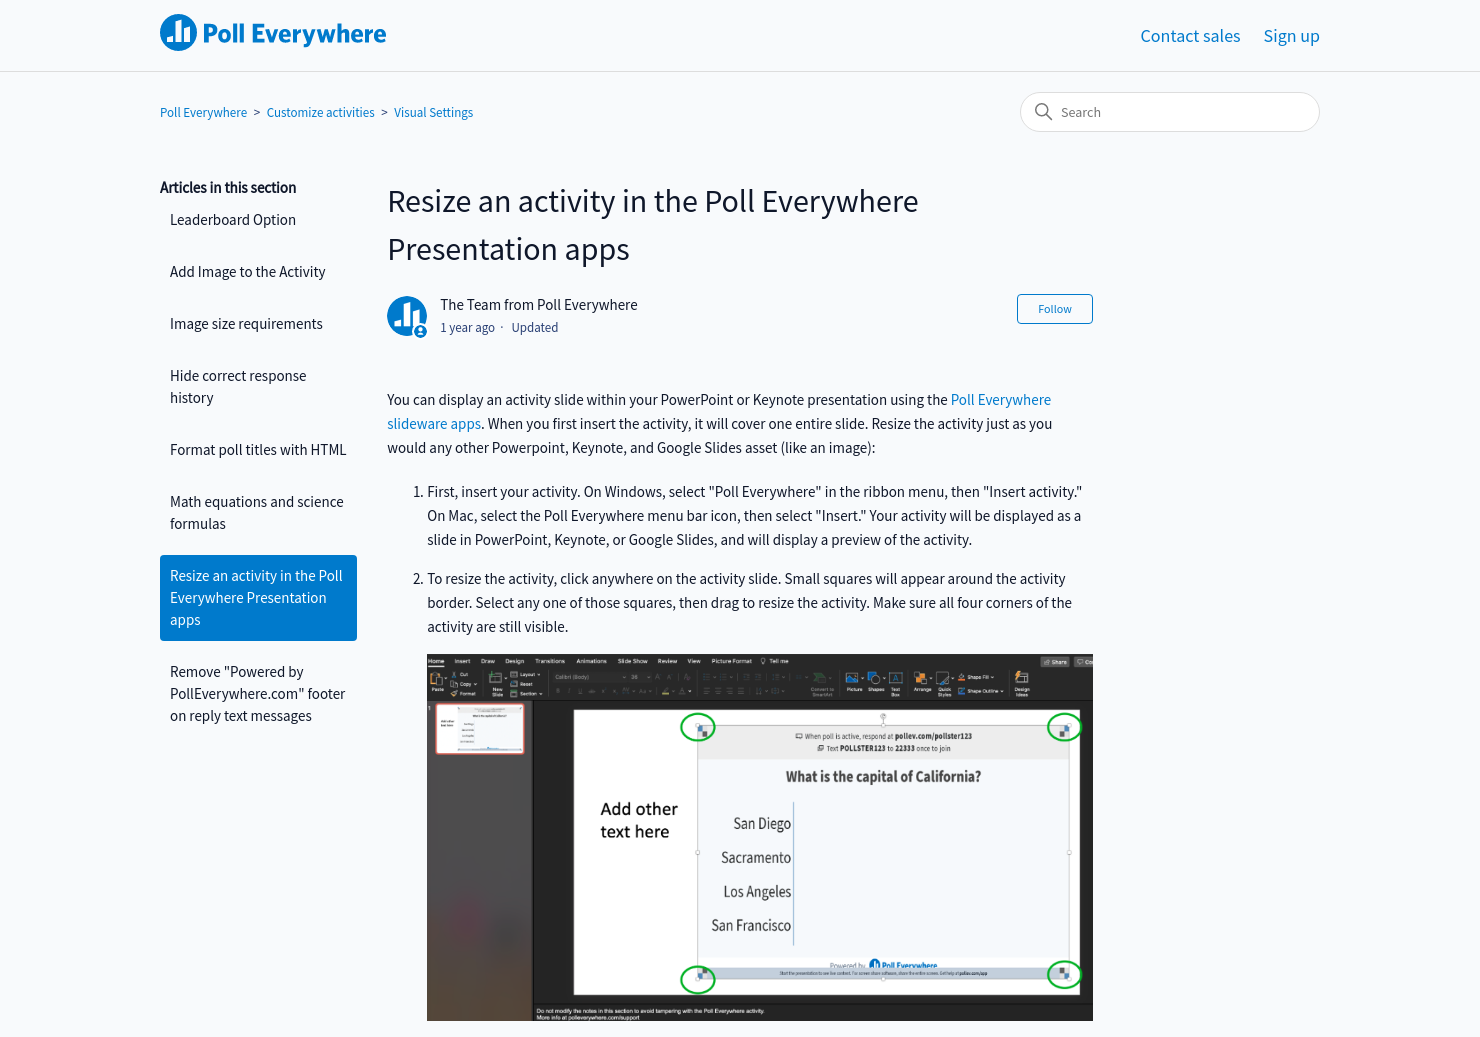 Resize an activity in the Poll Everywhere Presentation apps